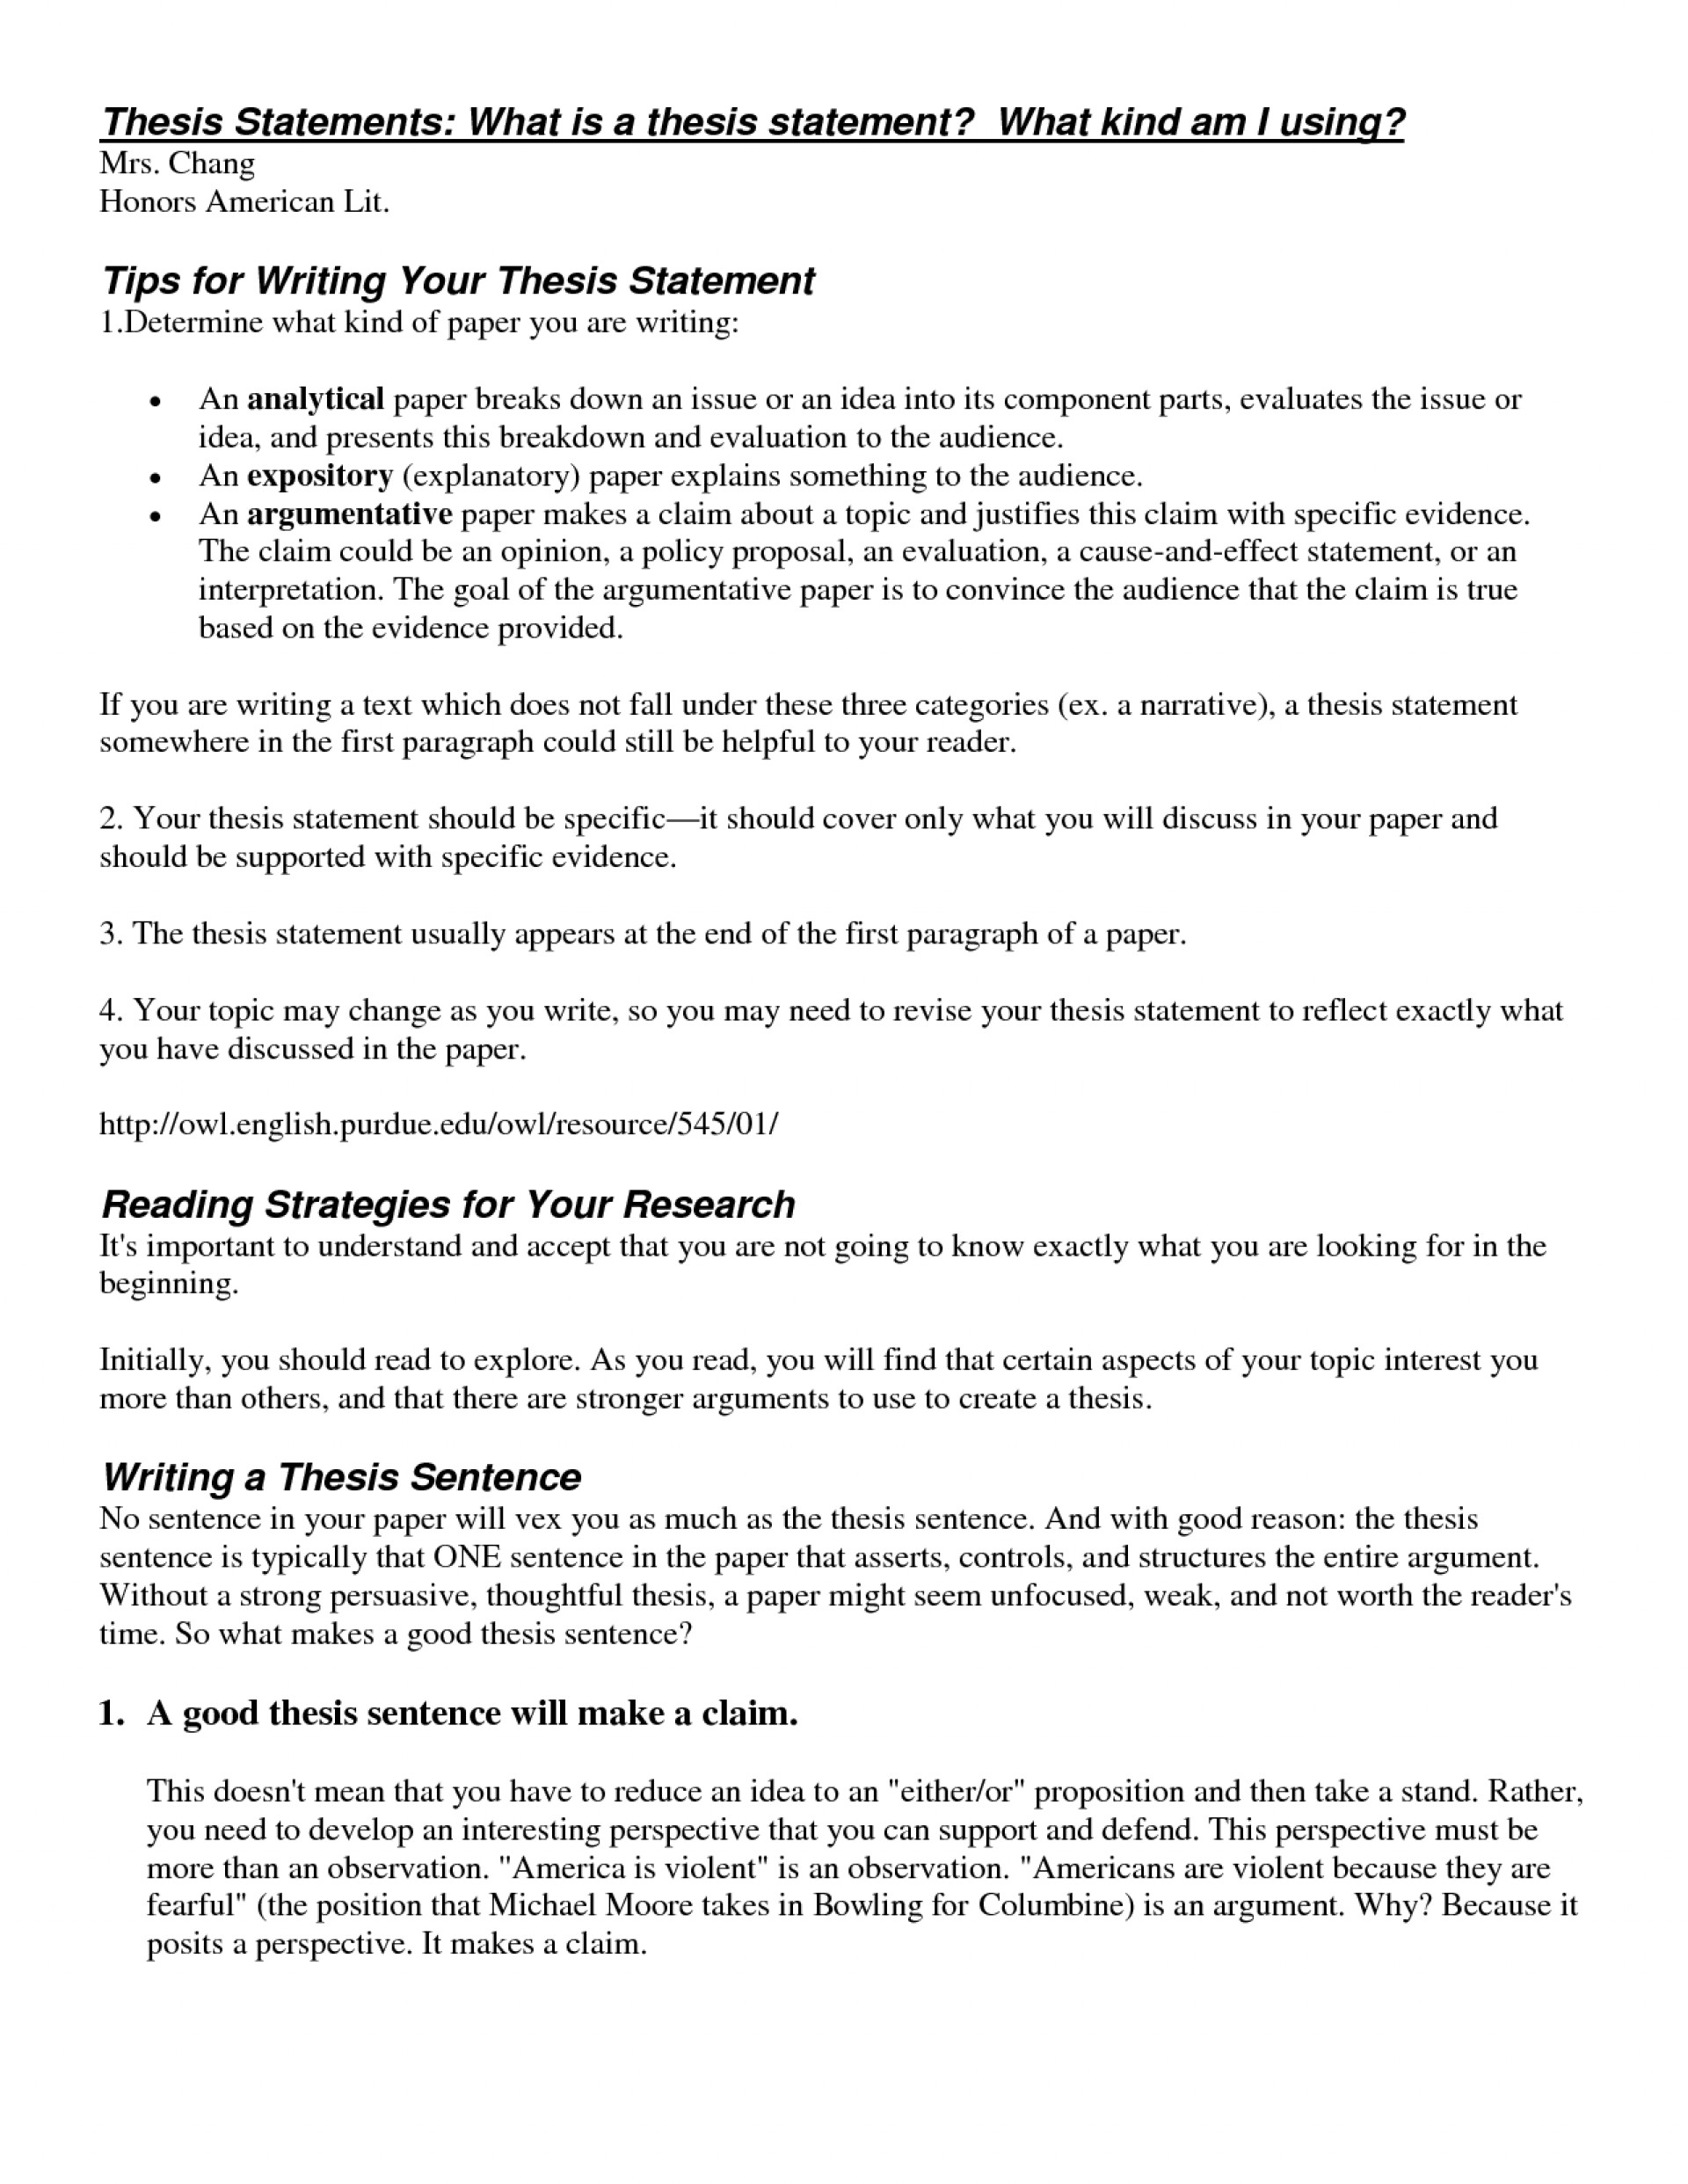 008 Research Paper Good Thesis Statement For Stirring Psychology Examples 1920